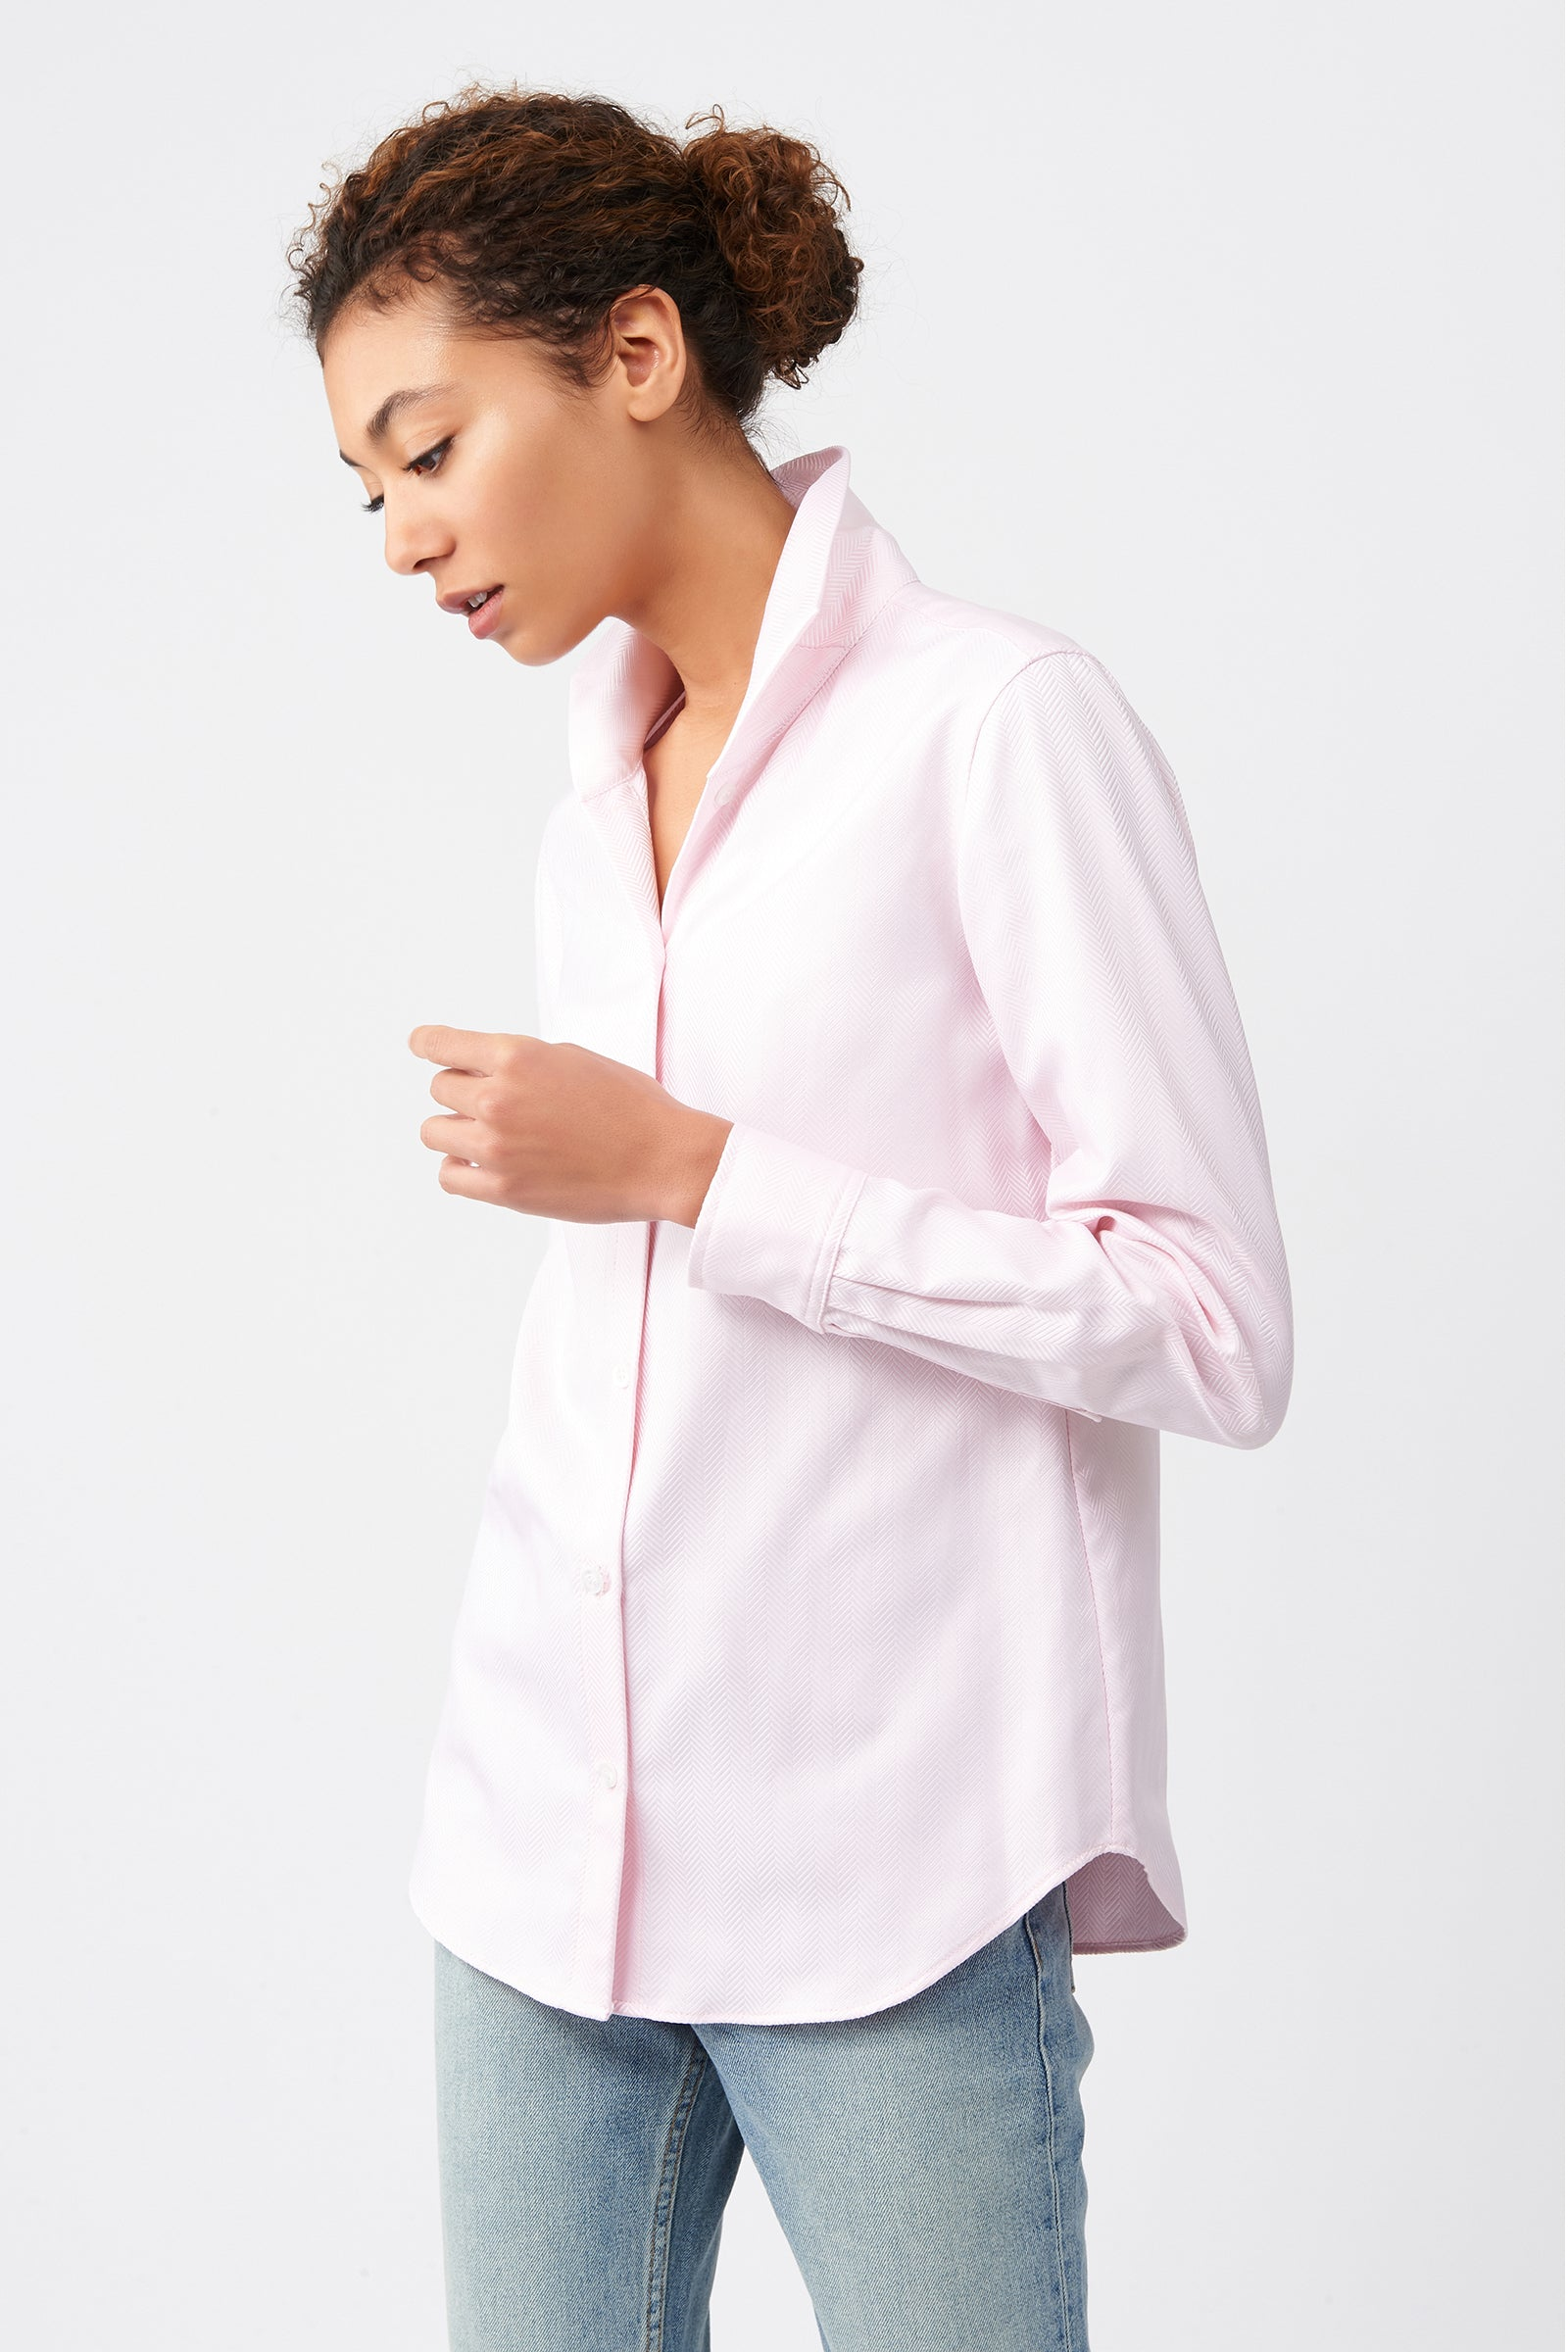 Kal Rieman Ginna Box Pleat Shirt in Pink Herringbone on Model Side View